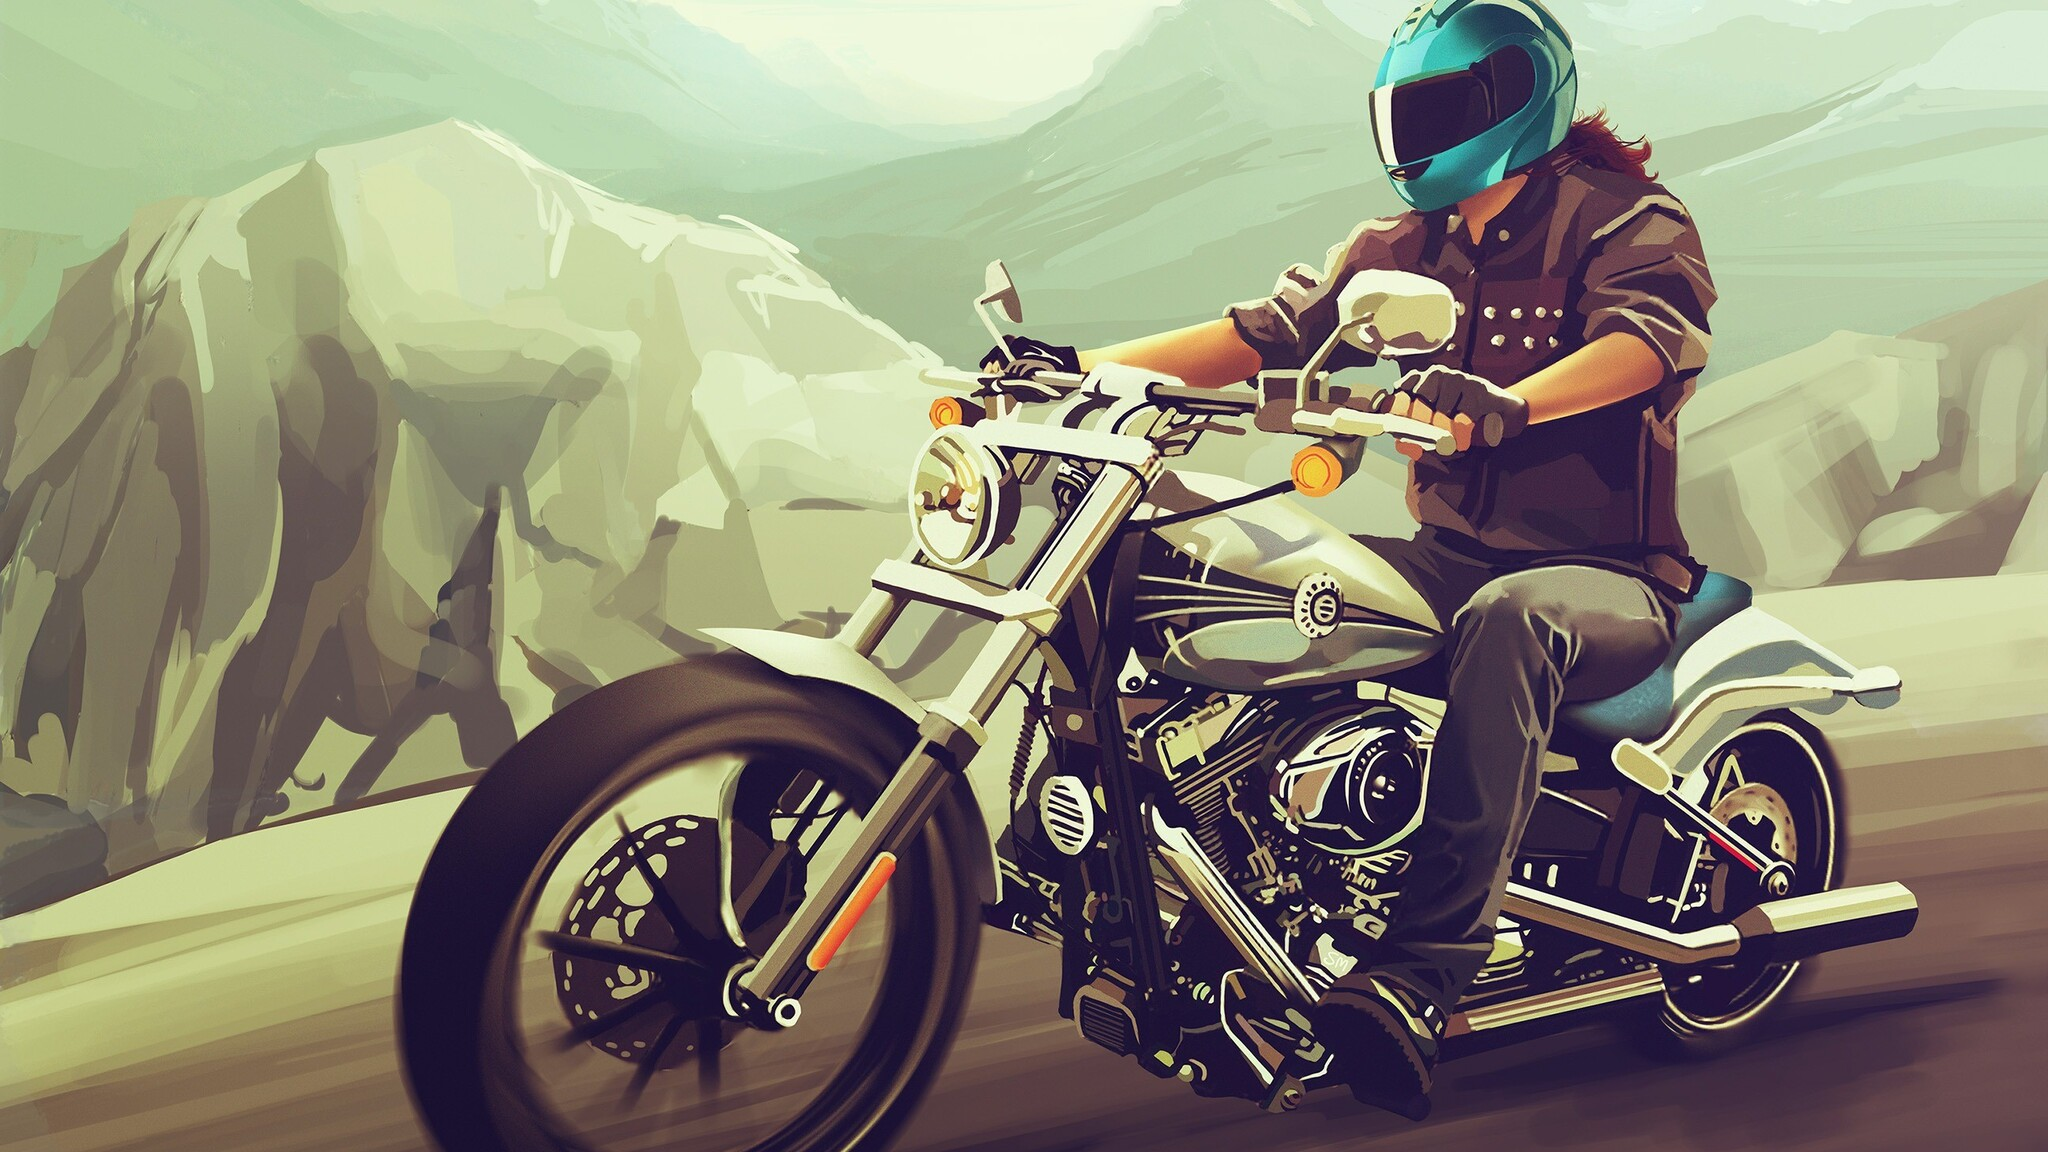 Download Harley Davidson 883 2048 X 2048 Wallpapers: 2048x1152 Harley Davidson Fan Art 2048x1152 Resolution HD